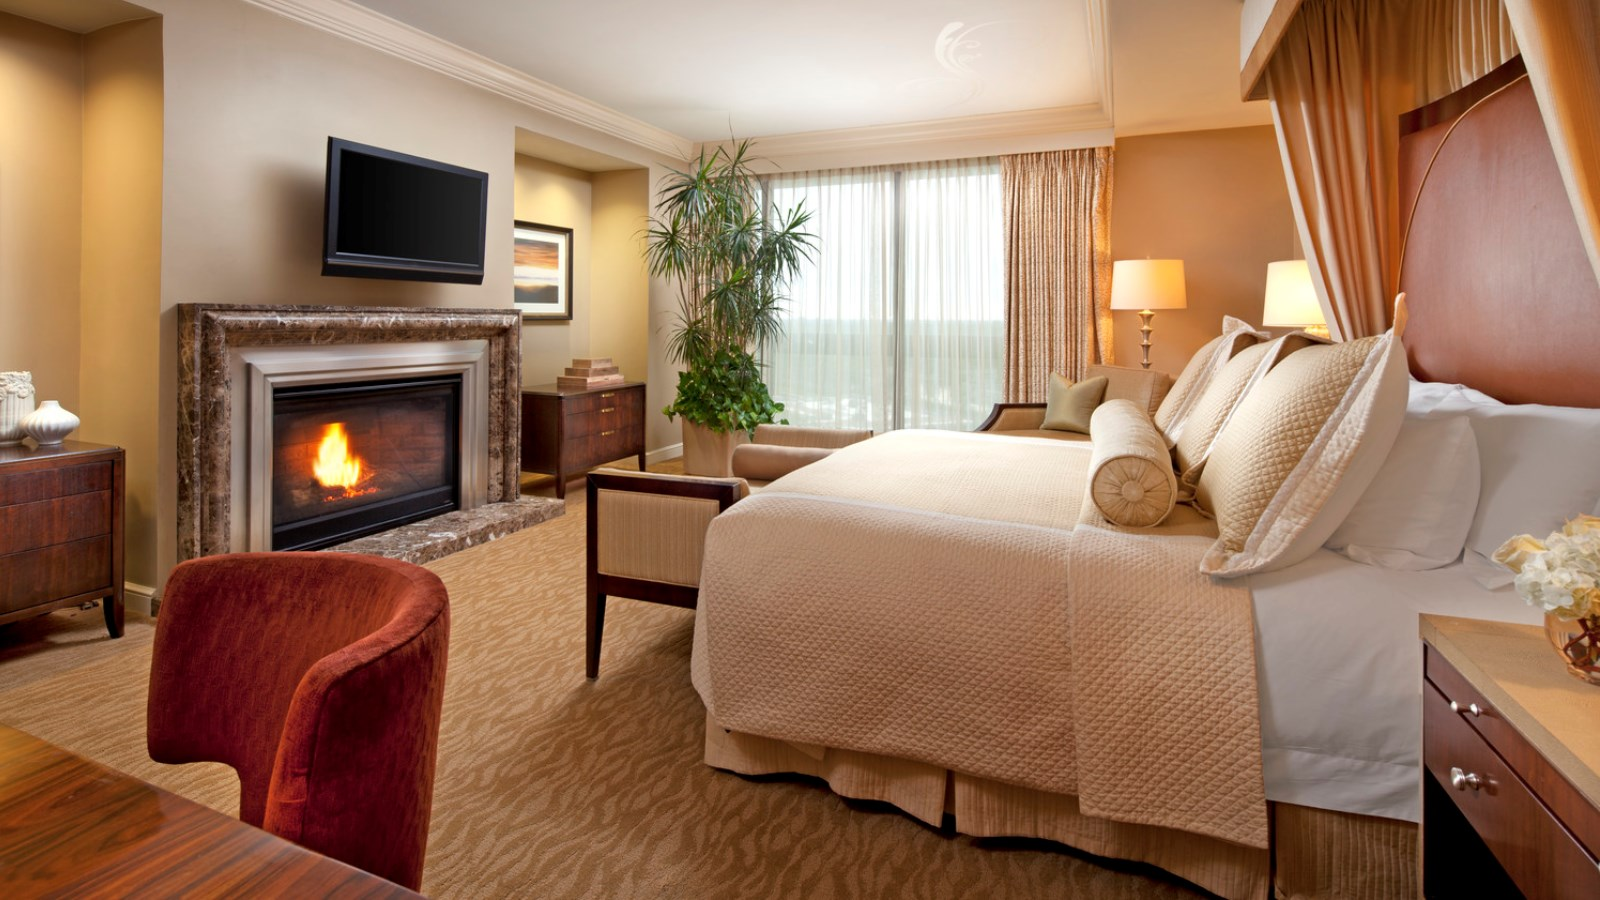 Presidential Suite - Luxury Hotels in Houston - The St. Regis Houston Hotel